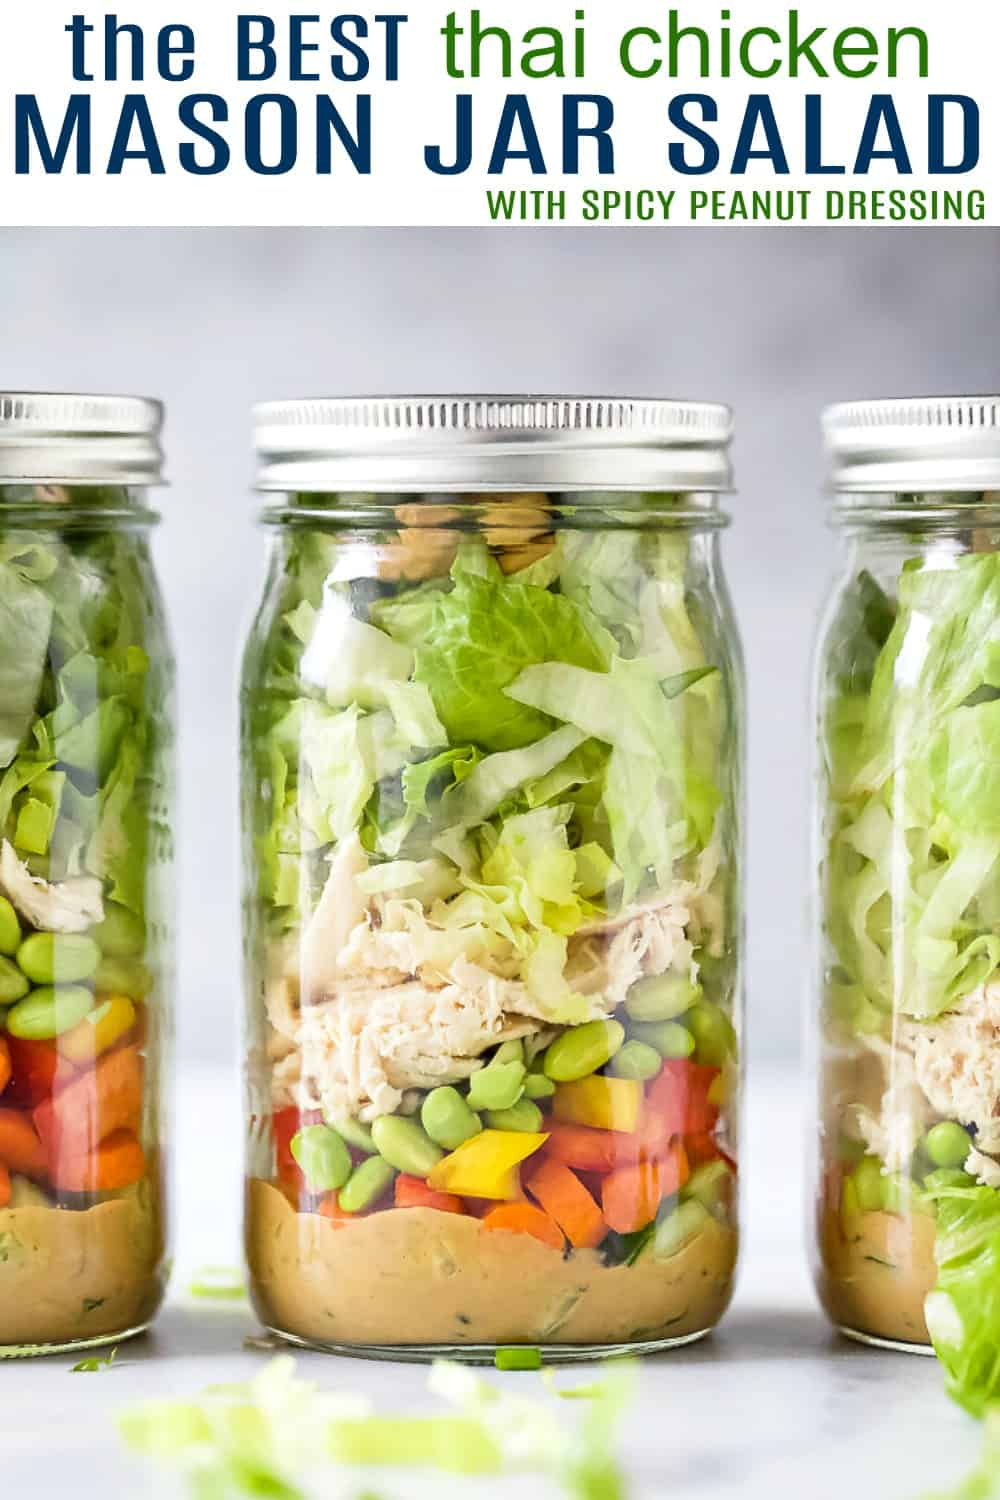 pinterest image for the best thai chicken mason jar salad recipe with peanut dressing